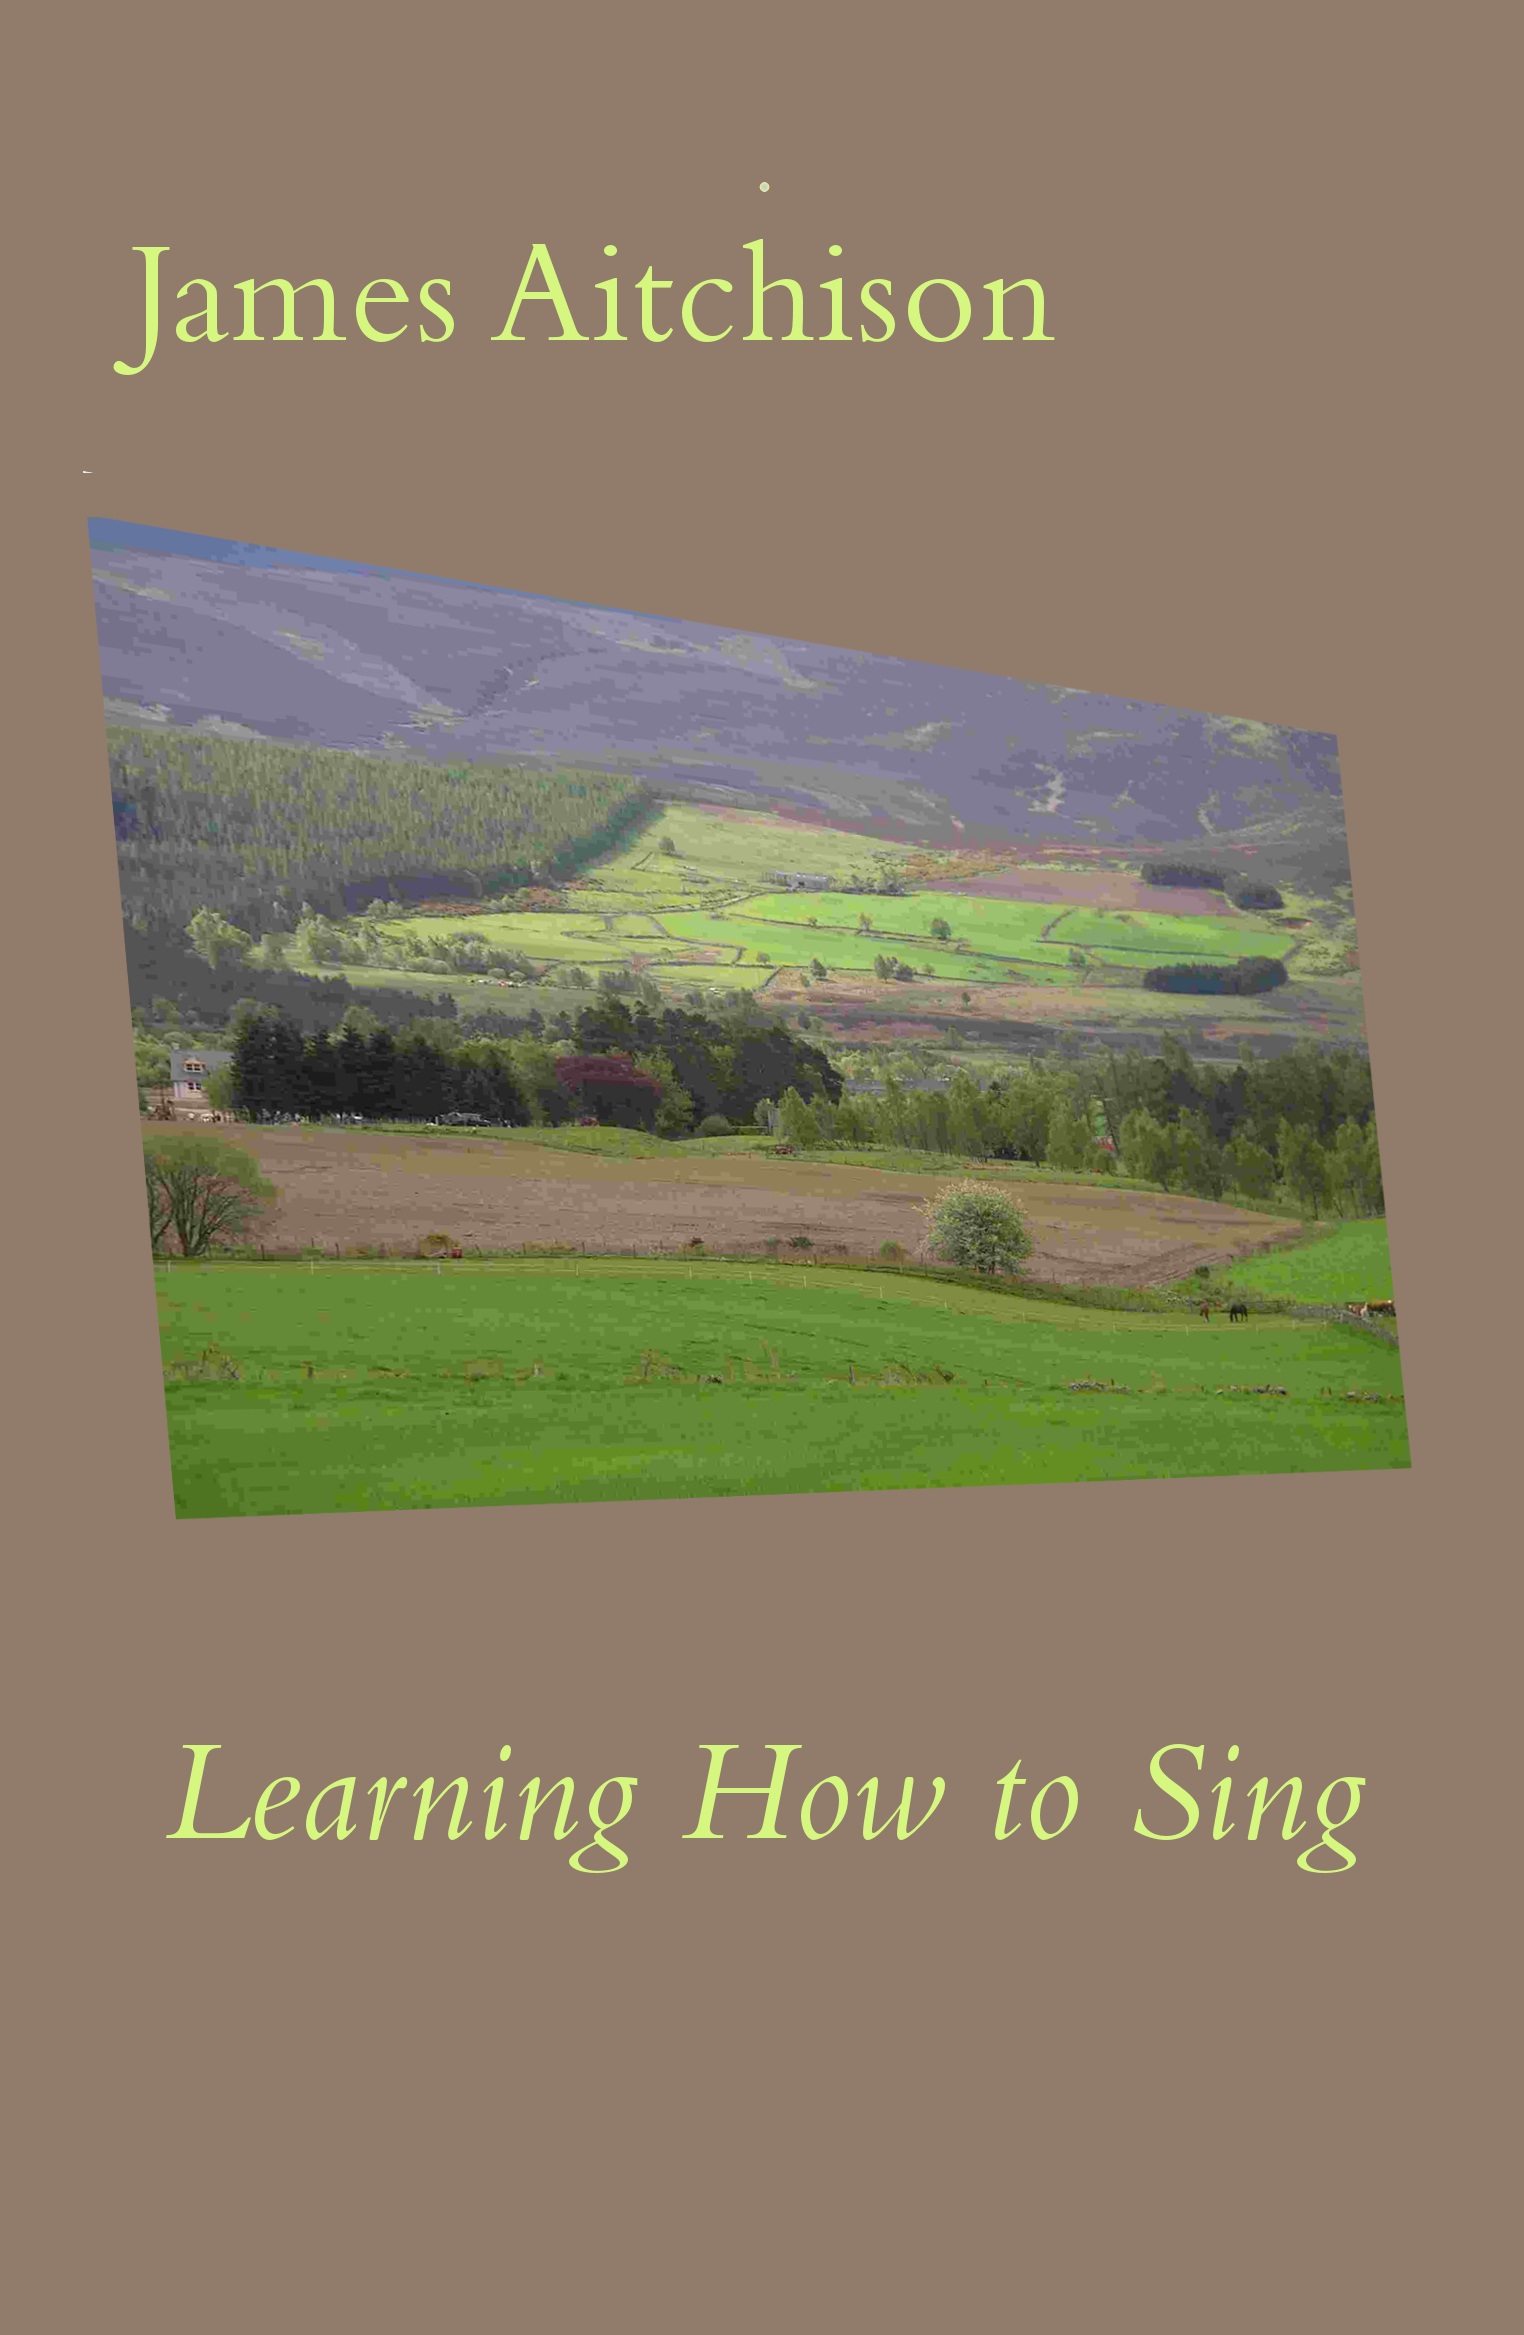 image of cover of Learning How to Sing